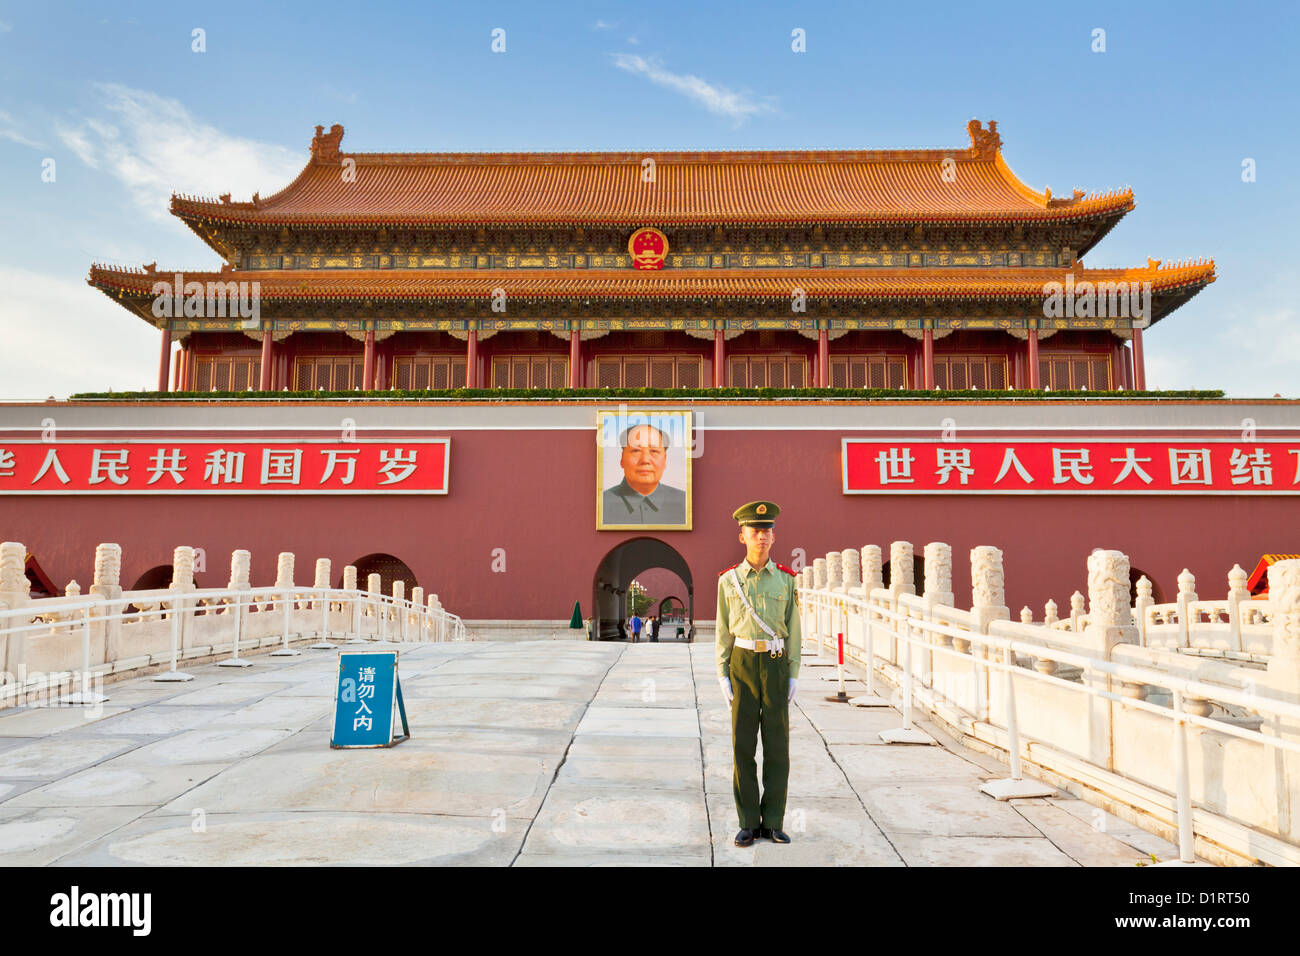 Chinese soldier guarding Tiananmen Tower under Chairman Mao's portrait, Gate of Heavenly Peace Beijing China - Stock Image